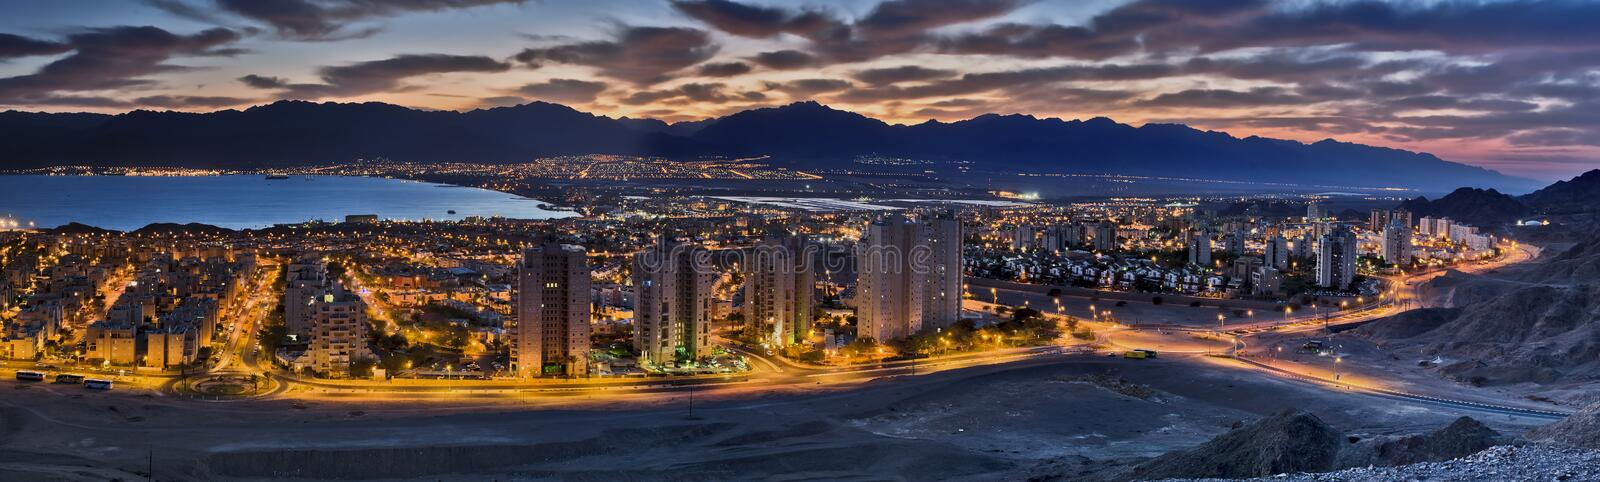 Panoramic view on Eilat city, Israel. Eilat is a famous resort and recreation city of Israel located on the Red Sea royalty free stock photo